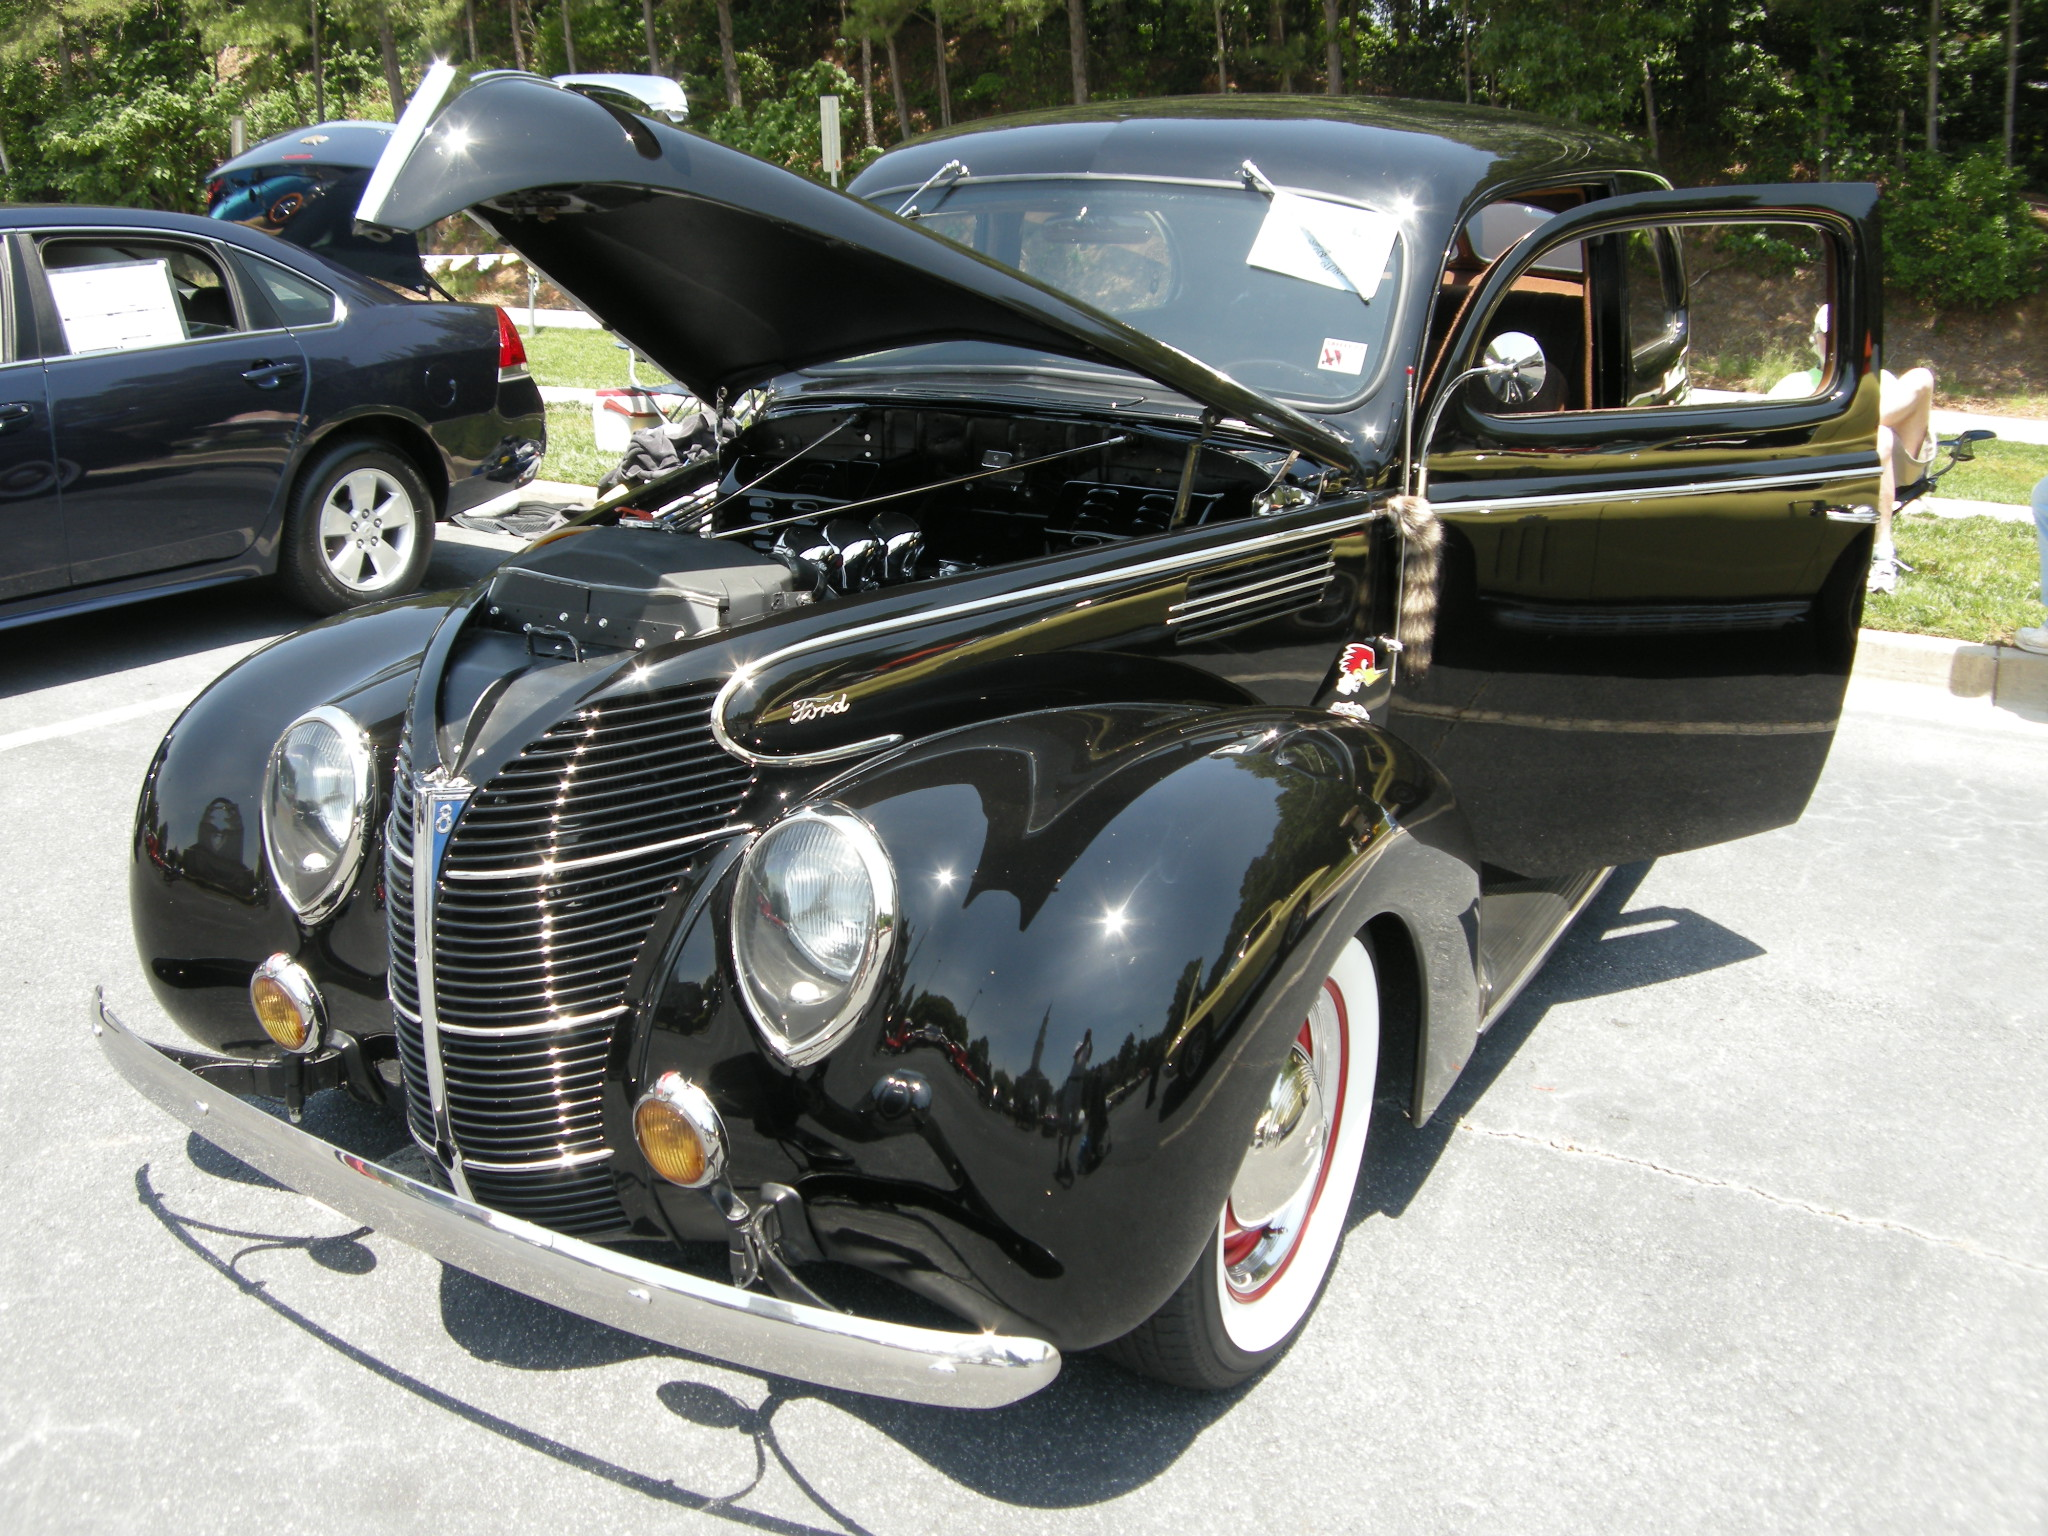 53 Cool Concept Cars… Part III, Tube Frame '40 Ford Coupe